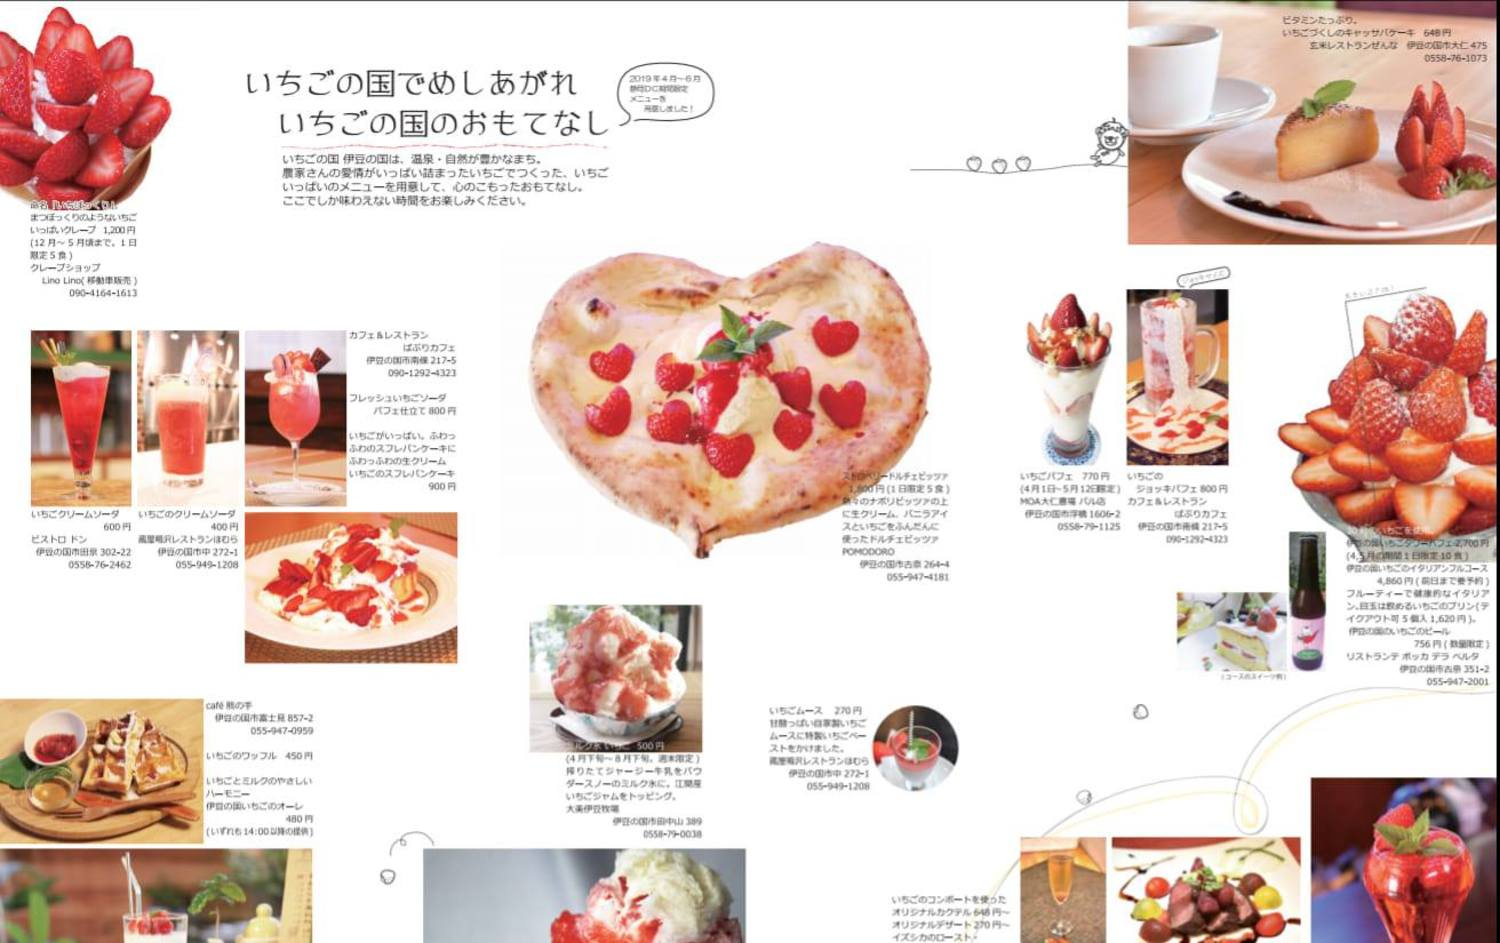 Welcome it is country brochure of Izunokuni strawberry